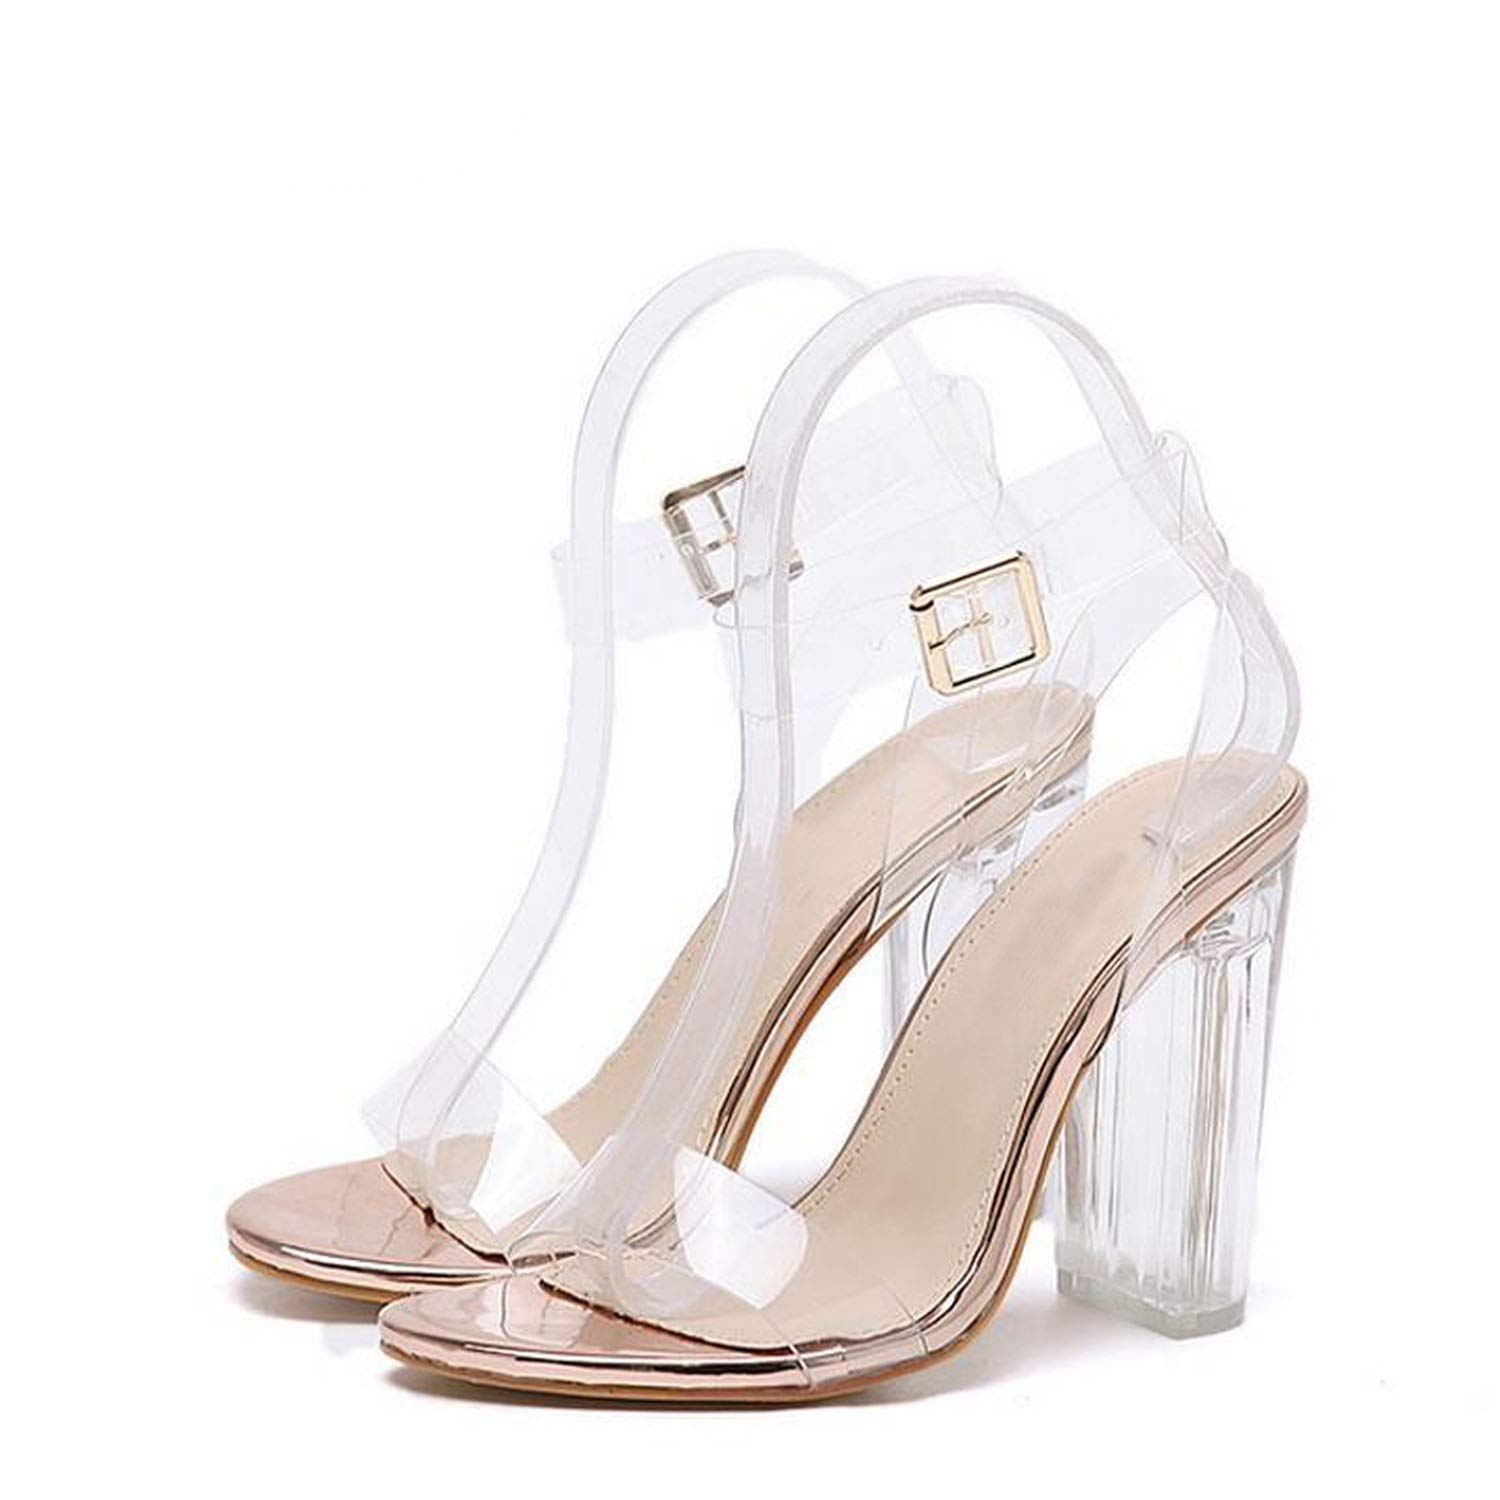 The small cat 2019 PVC Jelly Sandals Crystal Leopard Open Toed High Heels Women Transparent Heel Sandals